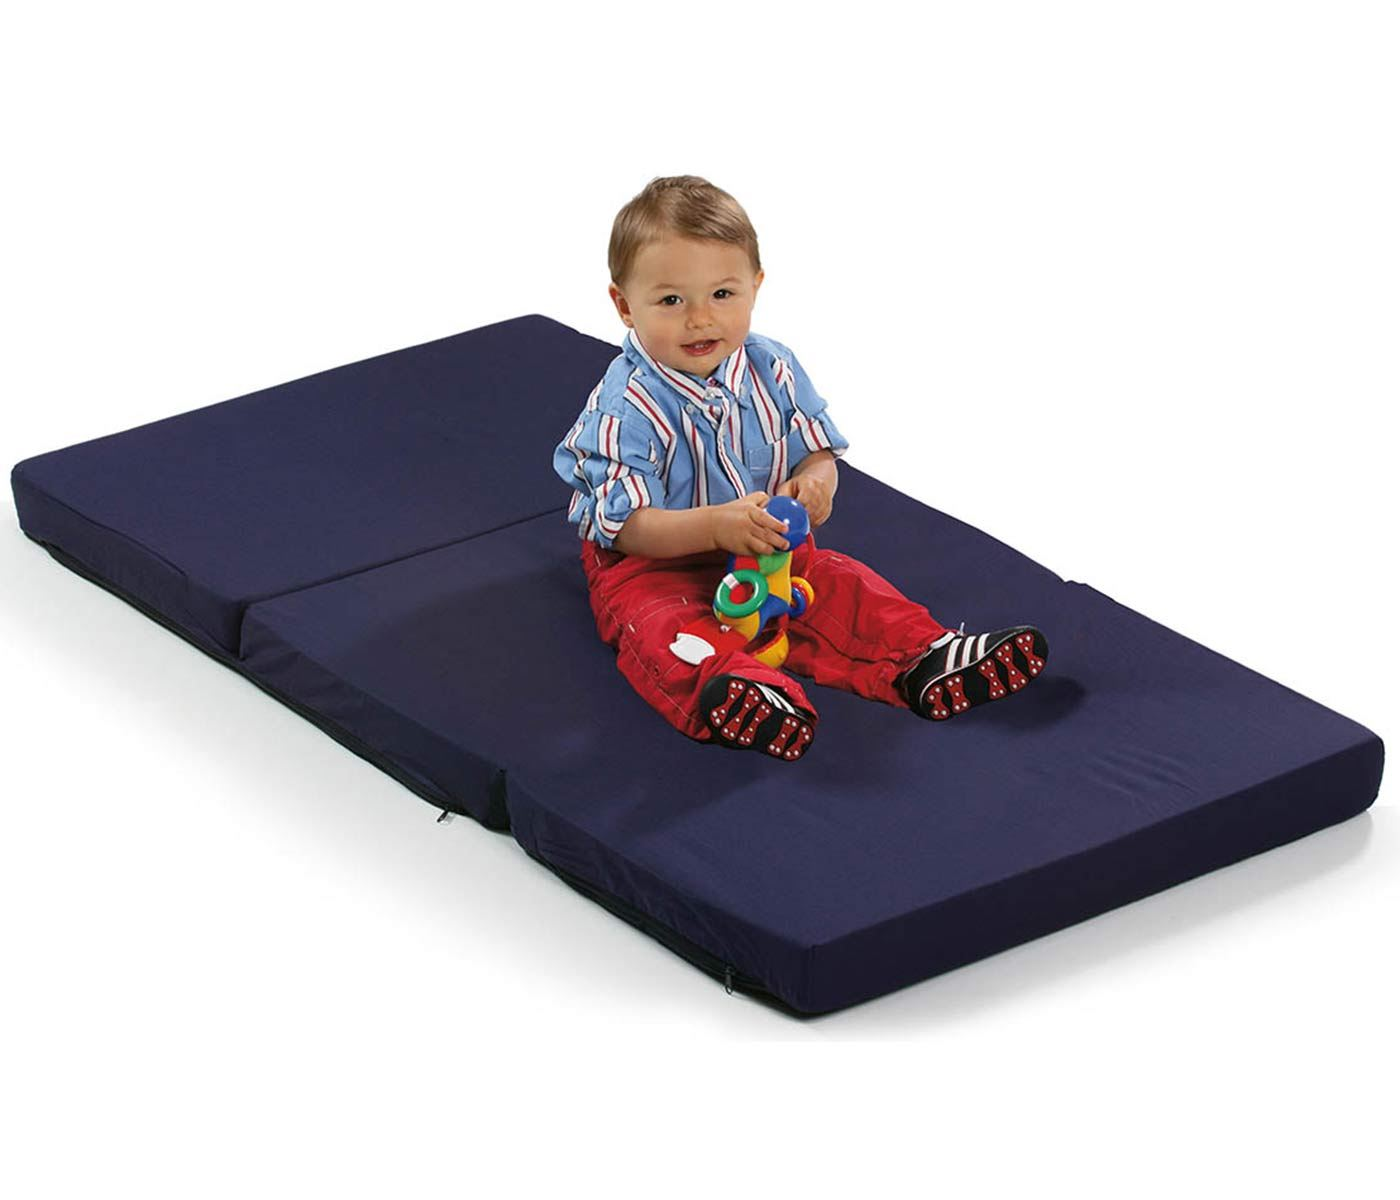 foam baby toddler memory play soft activity sleeping products cushioned playmat mats patchwork and mat